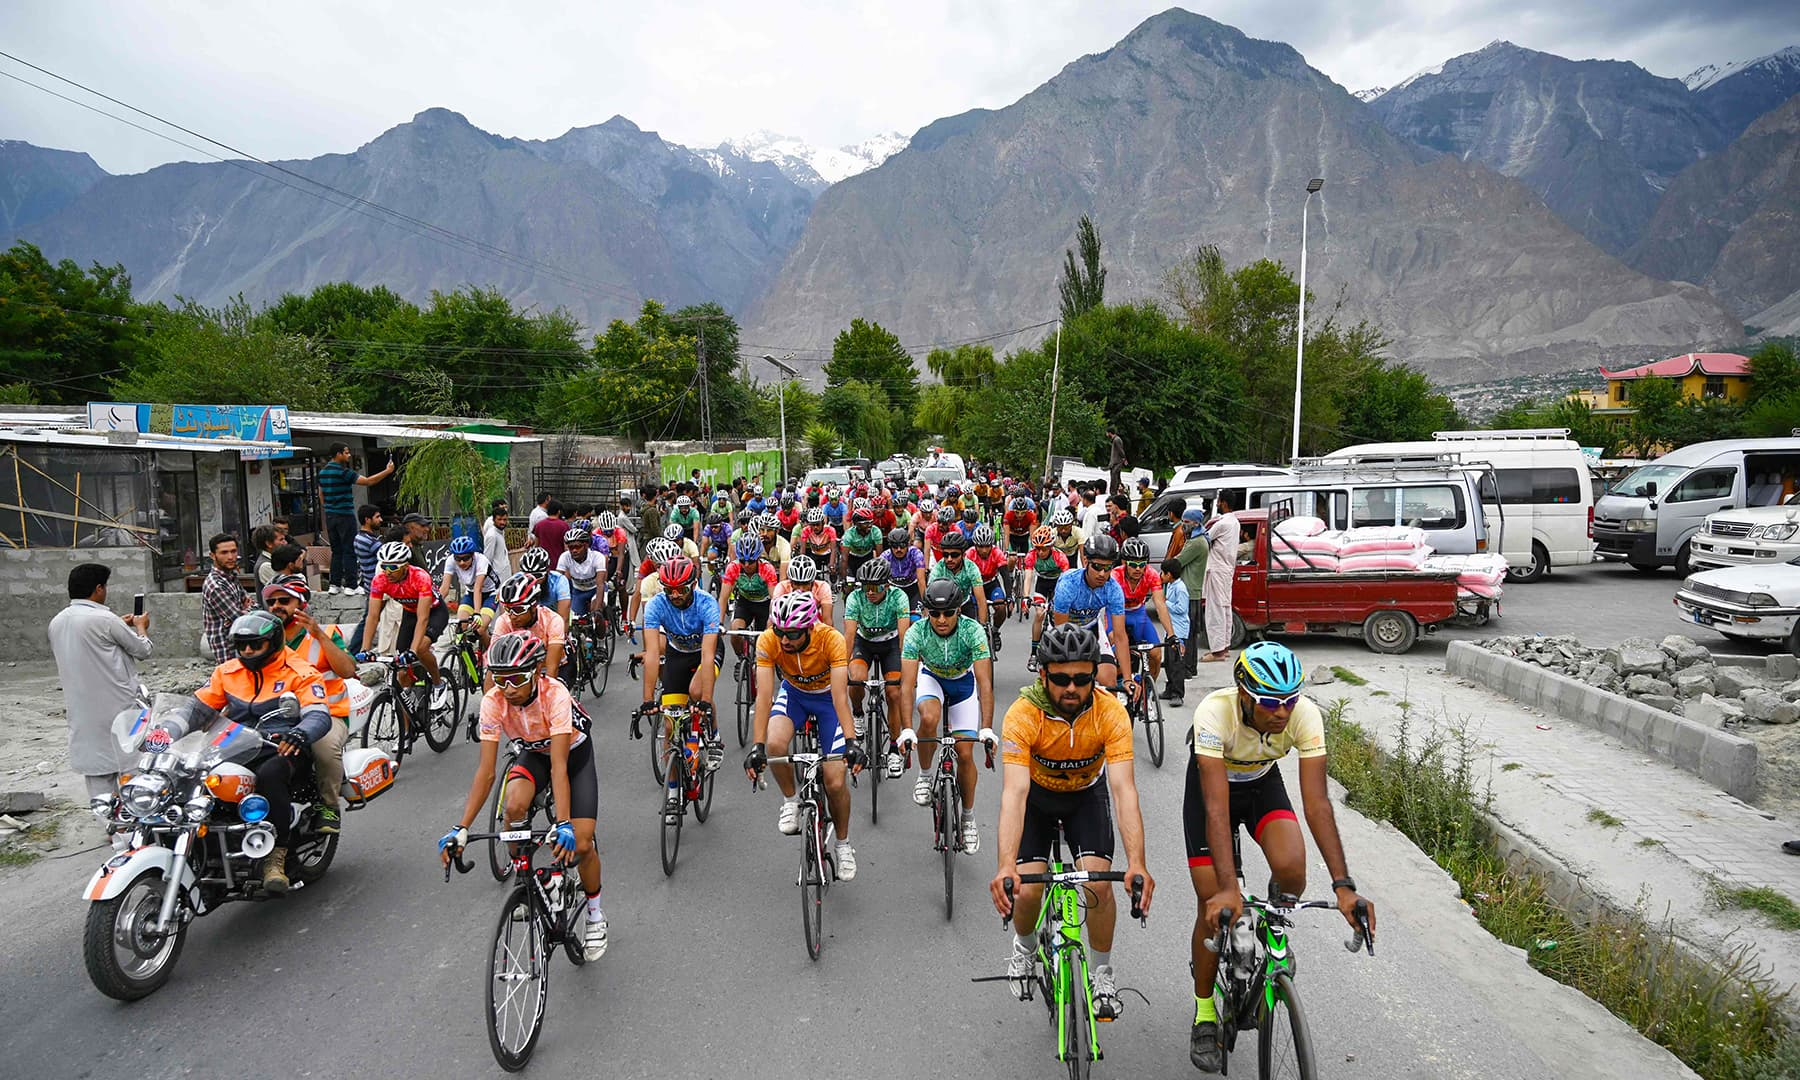 The event has been organised by the Gilgit-Baltistan government in collaboration with Pakistan Cycling Federation to promote tourism in the region. — AFP